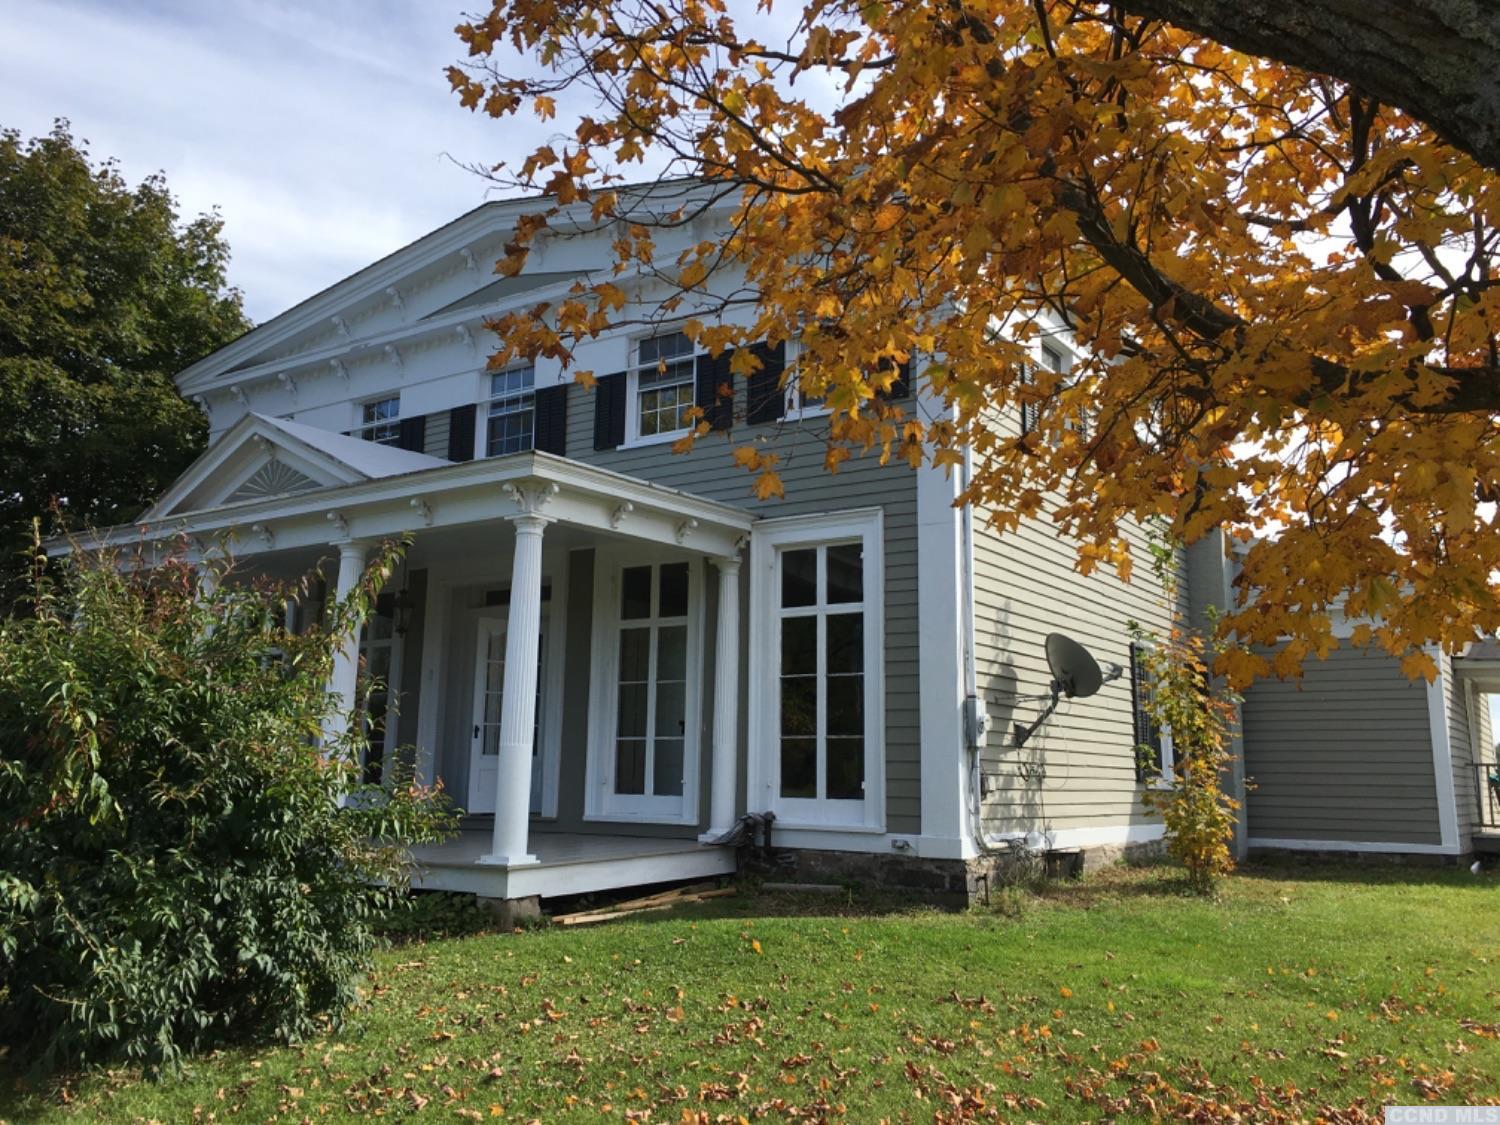 Exceptional 1840's Greek Revival on .90 acres with mt. Views. This historic home is full of character from the crown moldings, chair rails, 2 staircases and built in cabinets. Enjoy the newly renovated kitchen with stainless appliances. There are 4 bedrooms with original wide pine floors, and 2 updated bathrooms. Refinished hardwood floors on the 1st floor with 9' ceilings and spacious rooms. Relax on the back porch and enjoy the mt. view. There is a detached 2 car garage. Located in Greenville schools. Agent is Part owner.